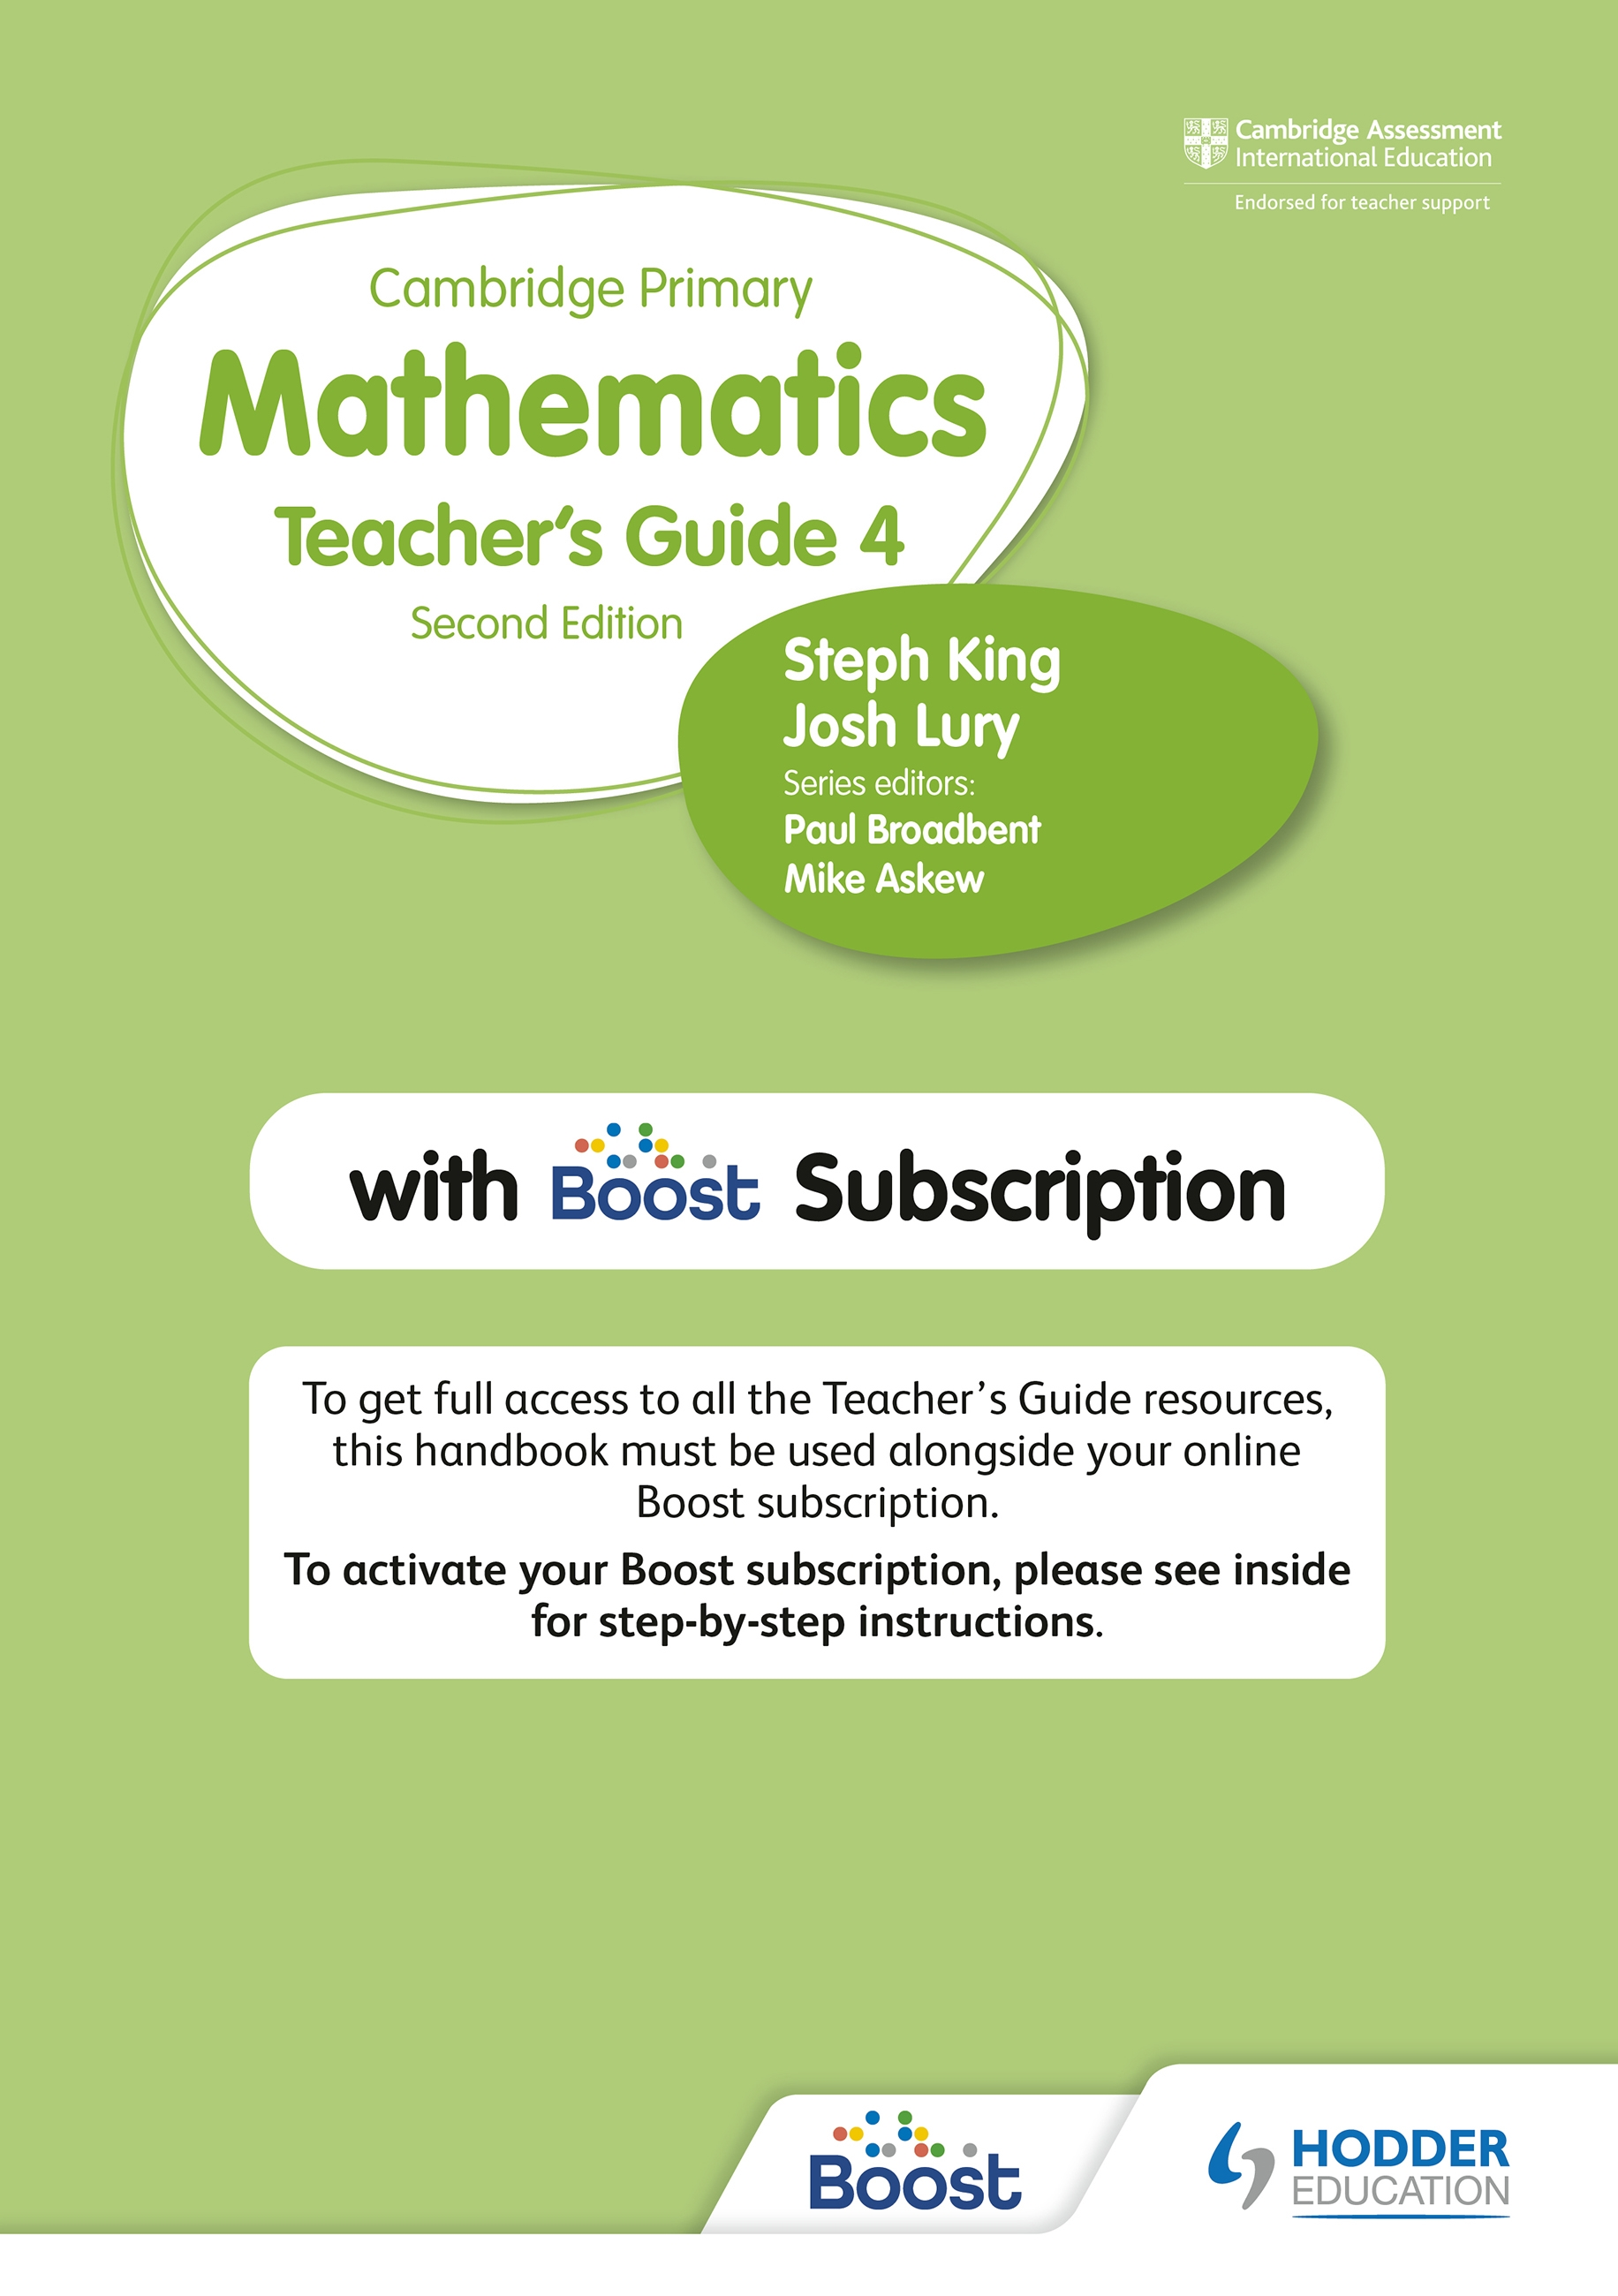 Cambridge Primary Mathematics Teacher's Guide 4 with Boost Subscription